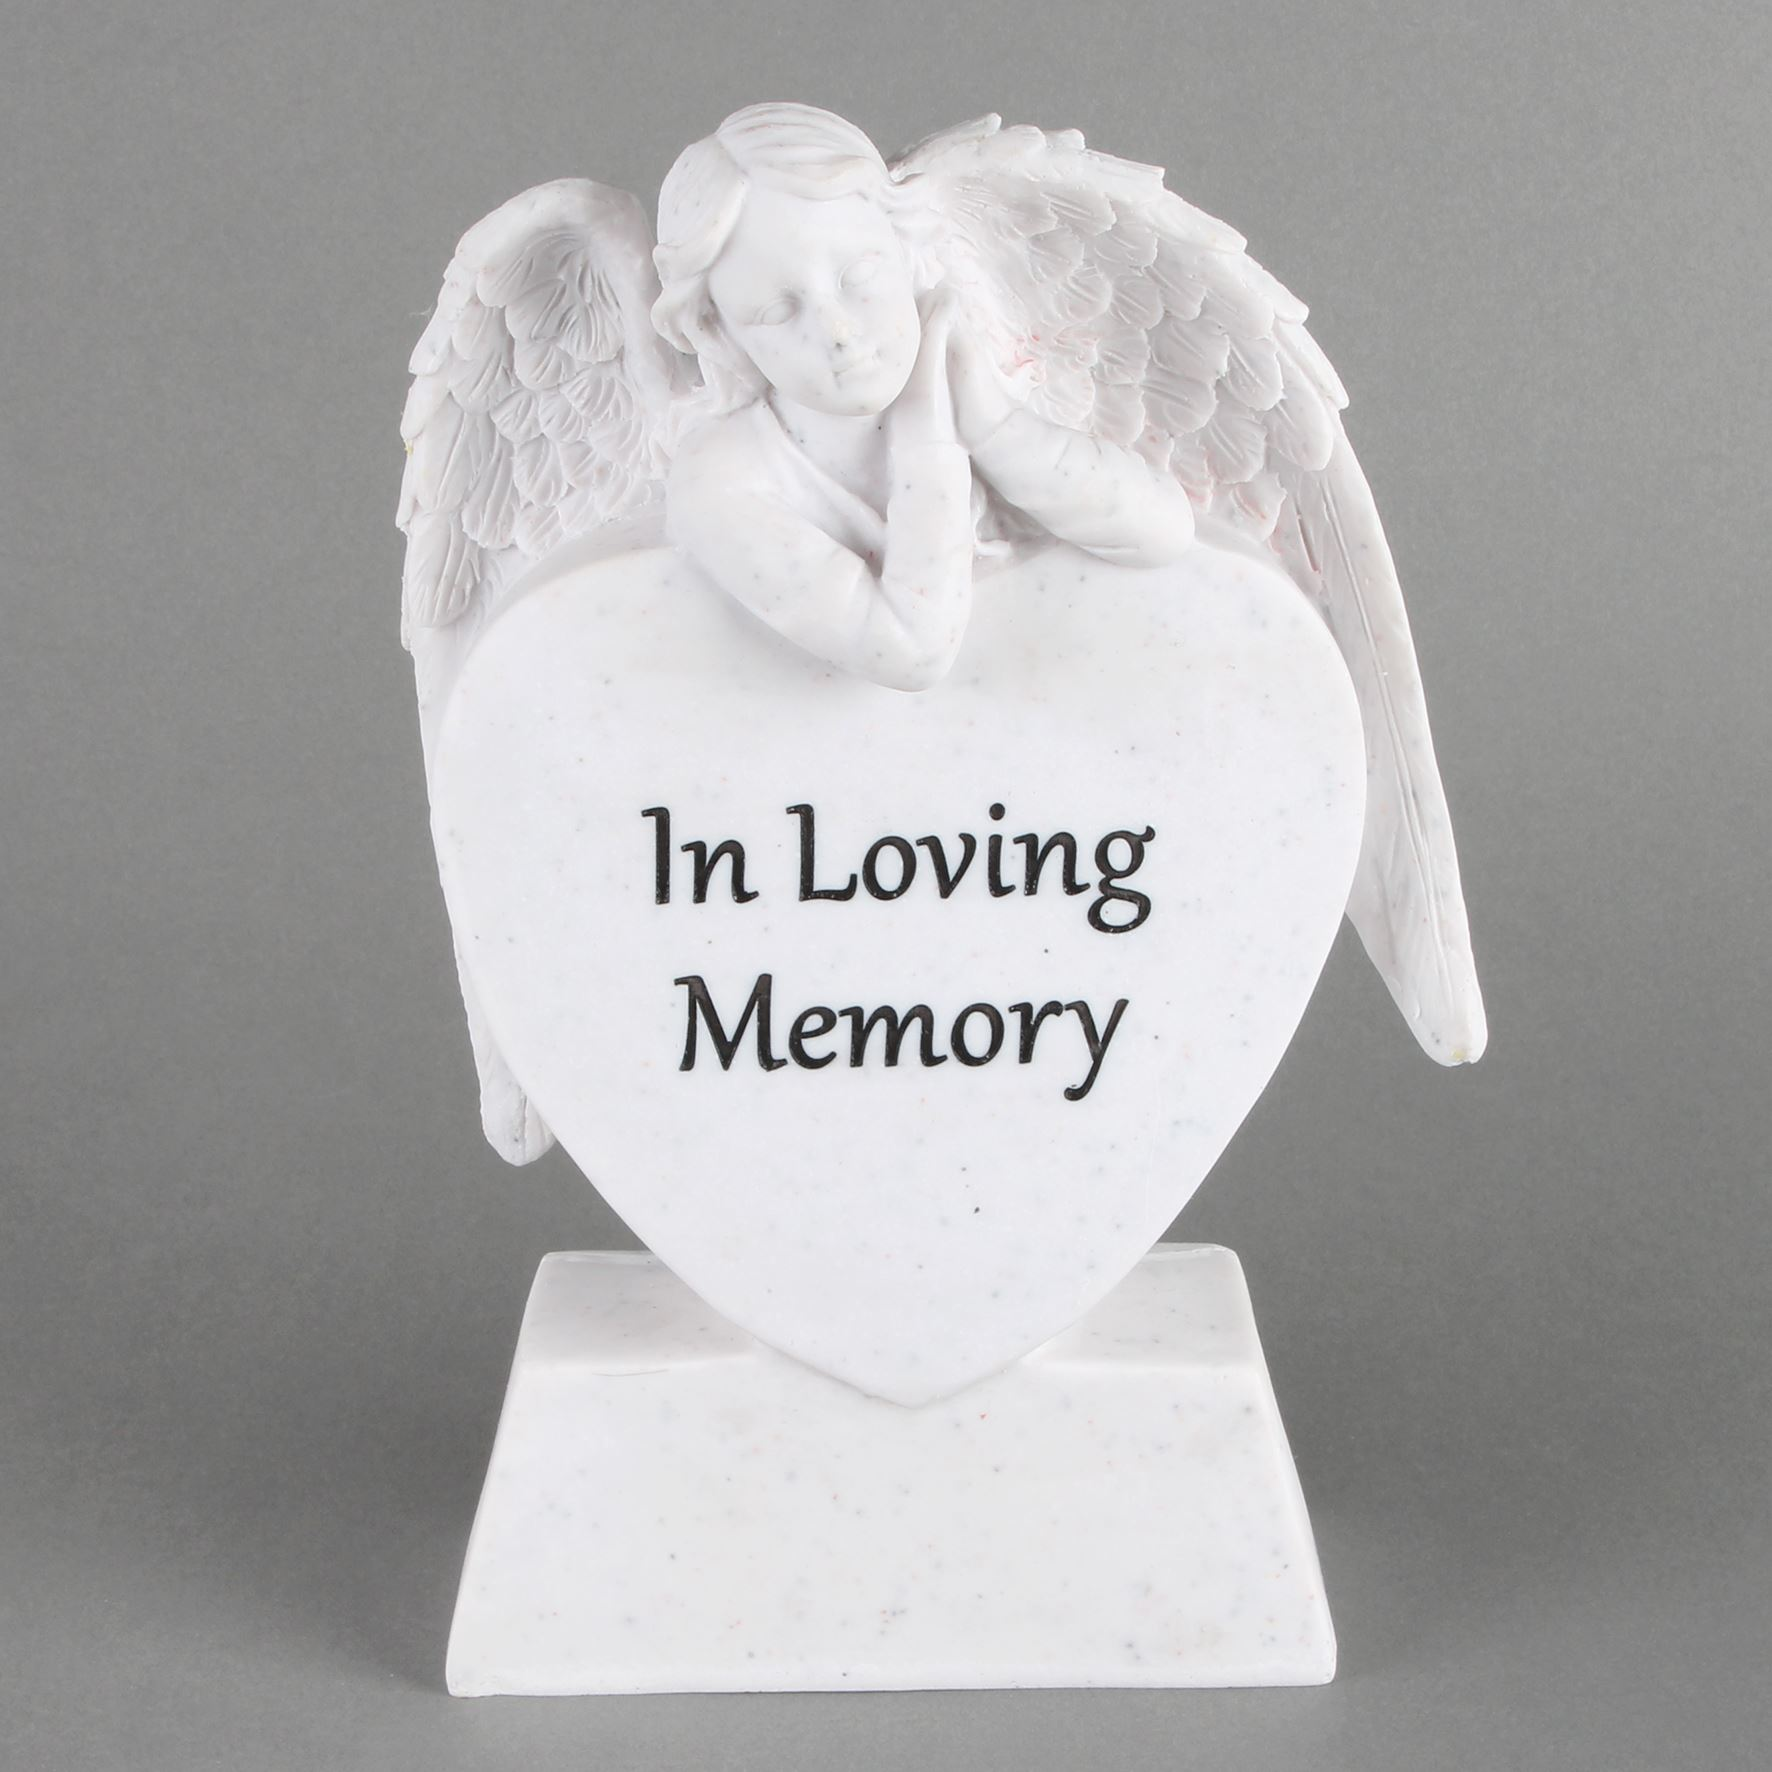 Thoughts of You Angel Leaning On Heart - In Loving Memory